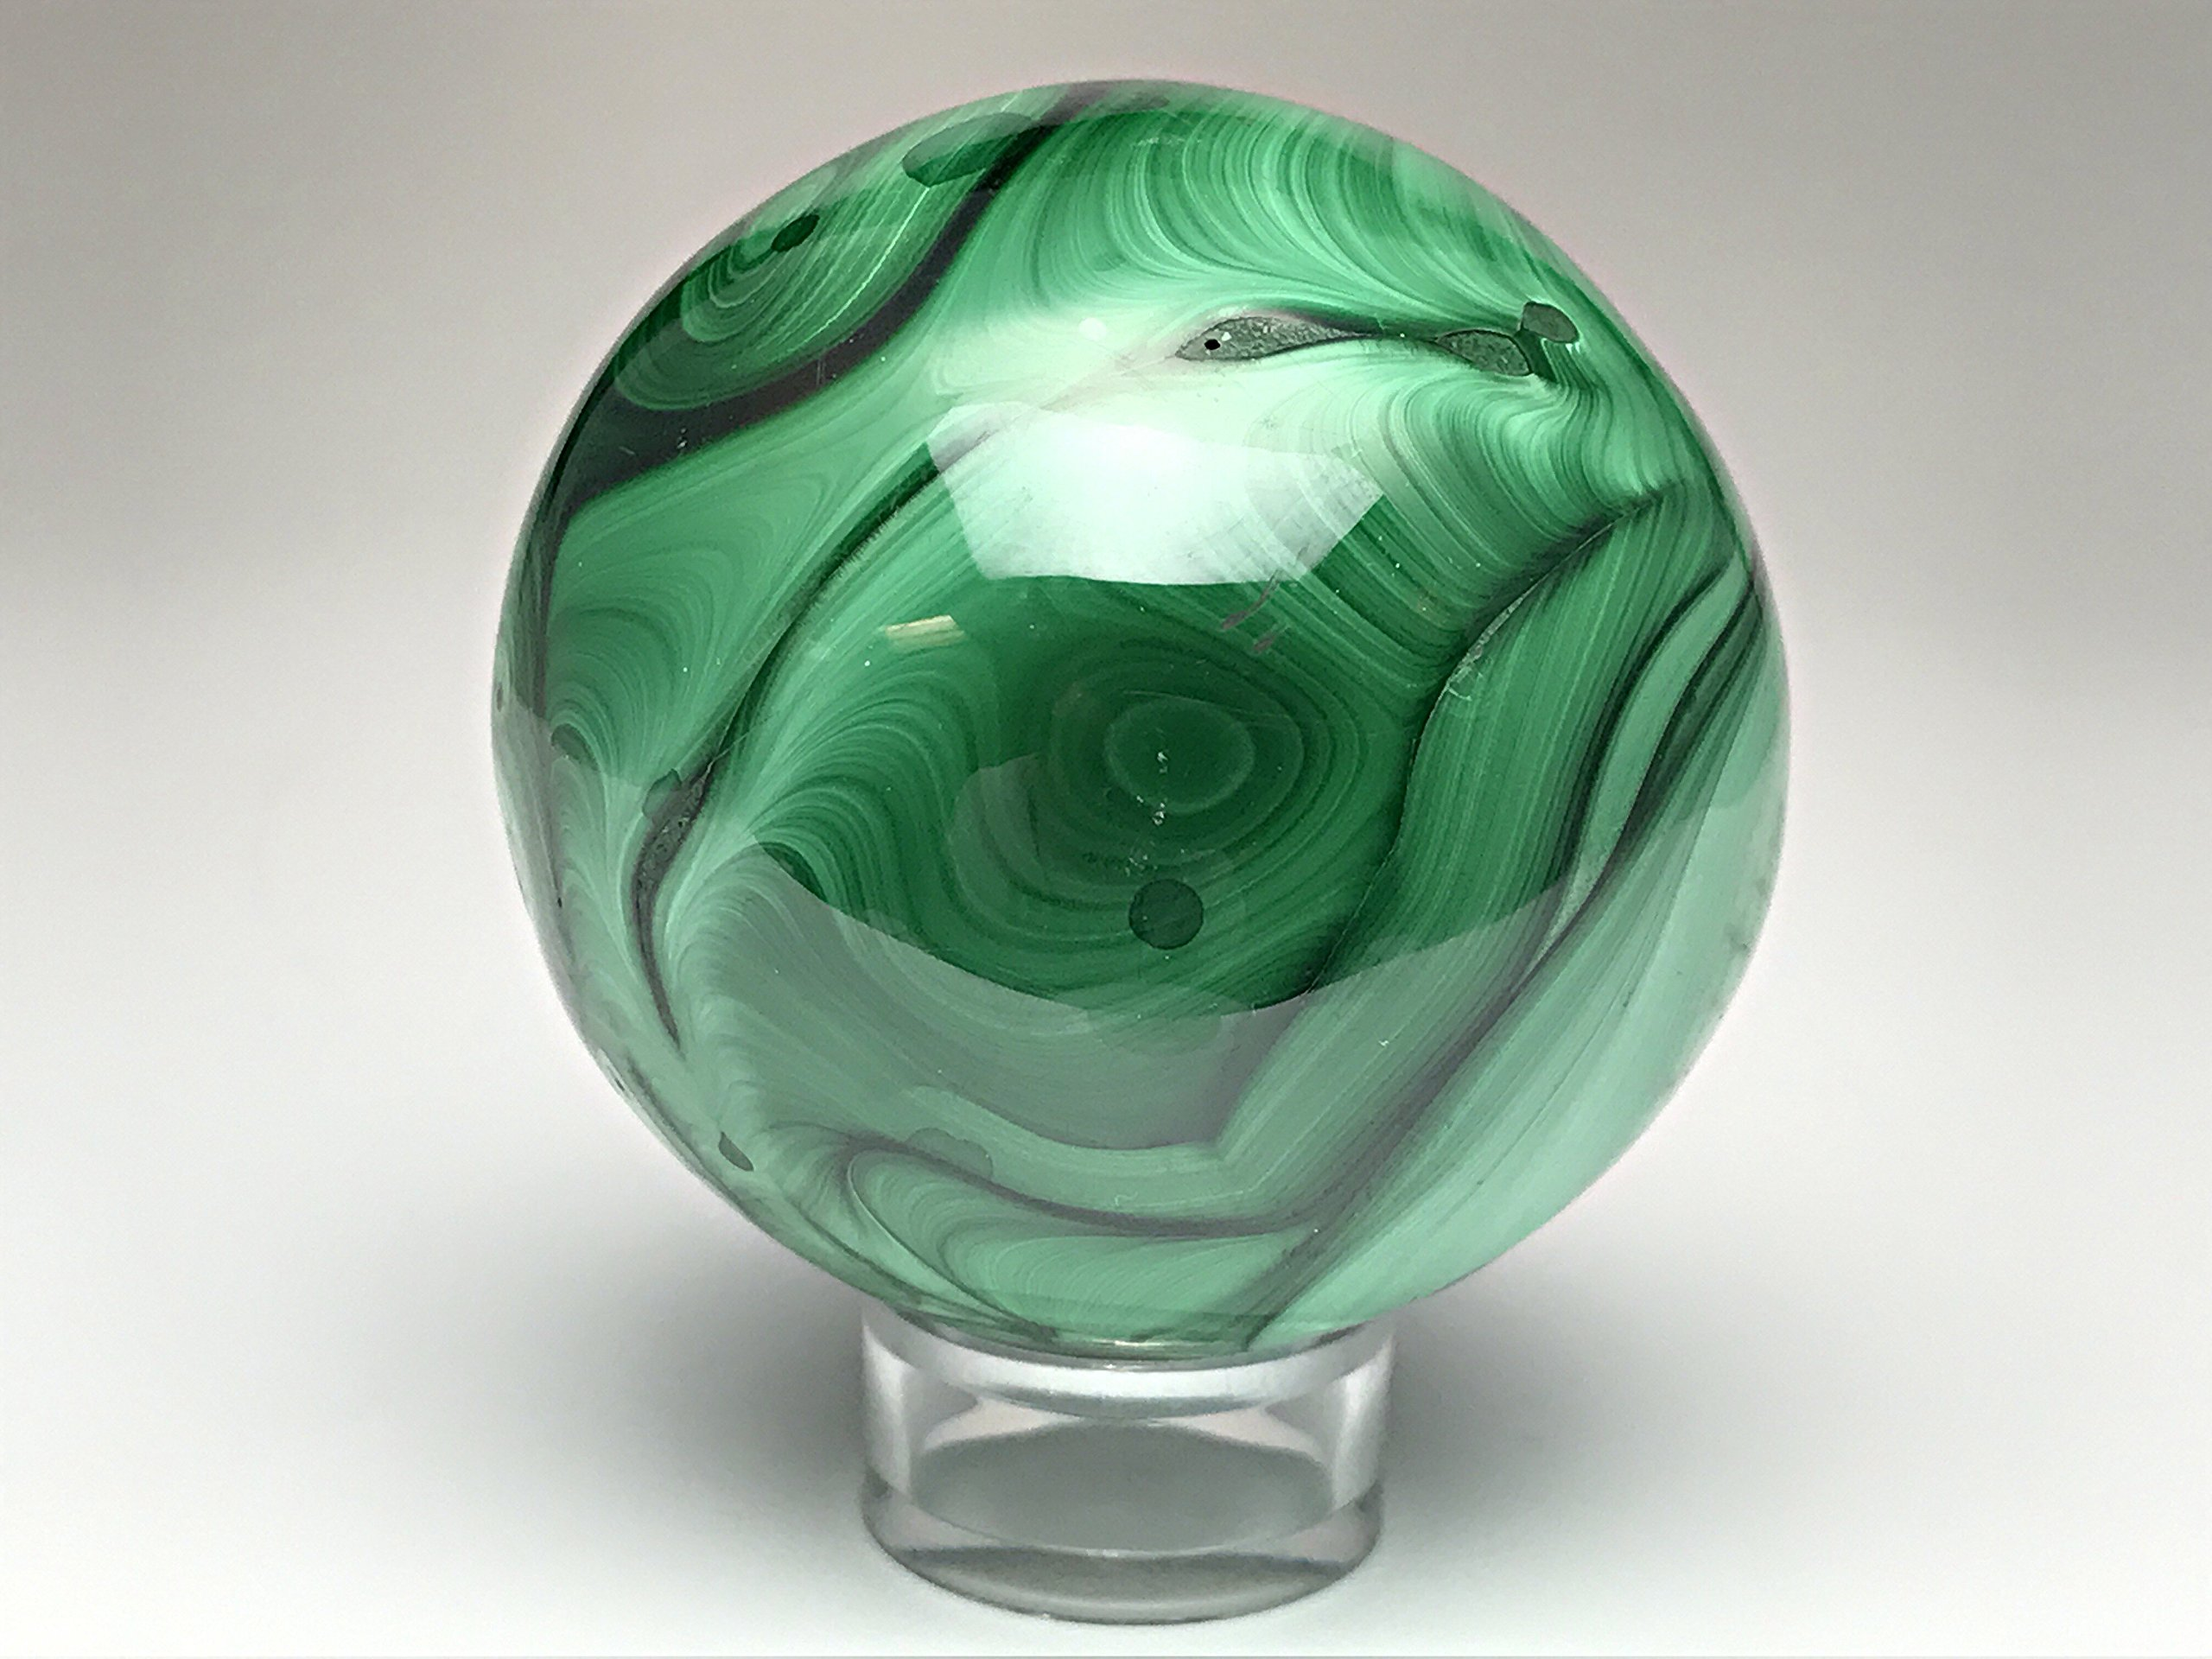 Astro Gallery Of Gems Polished Malachite Sphere - 386 Grams